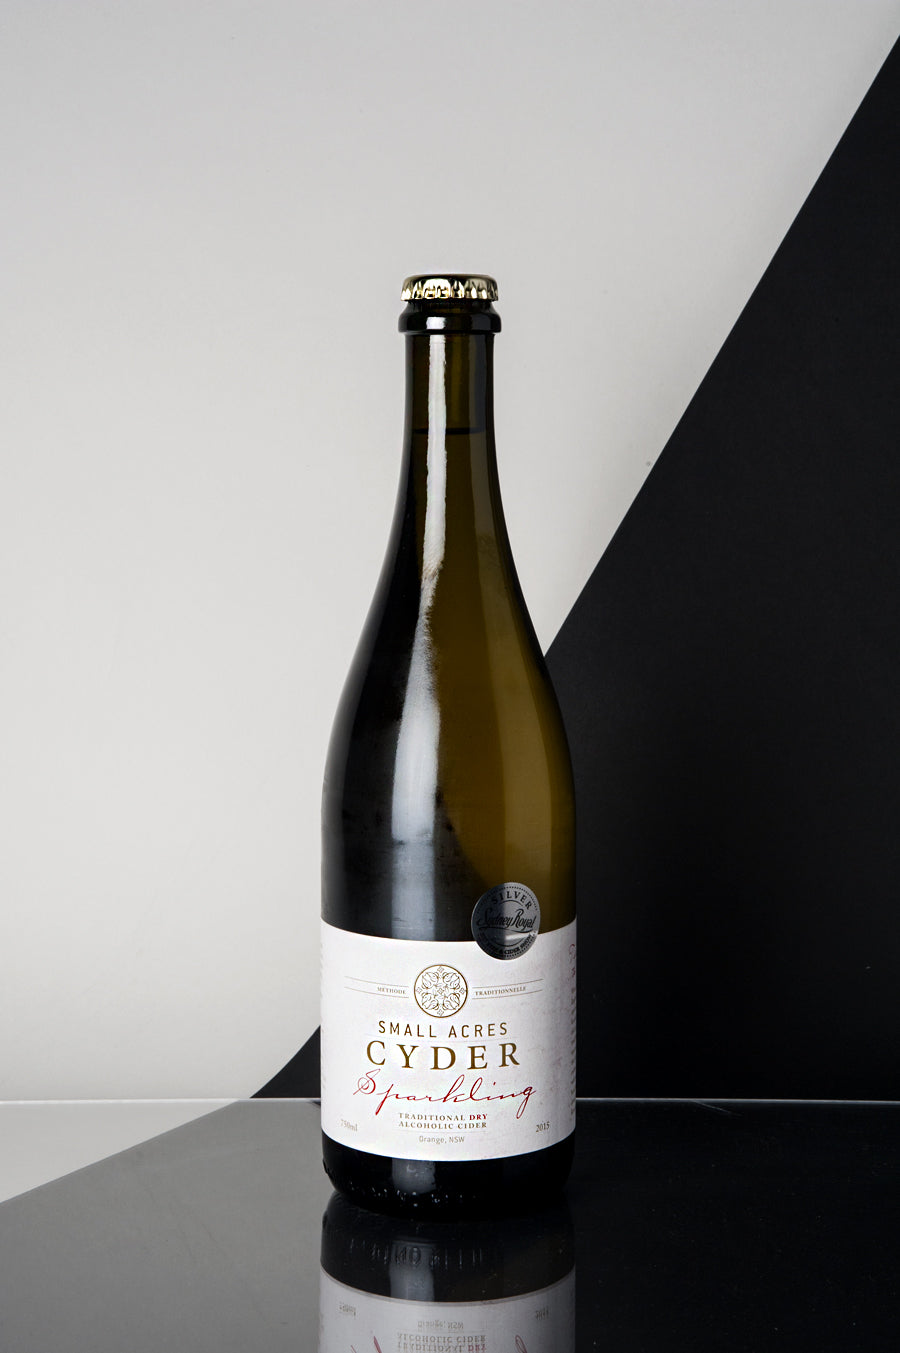 Small Acres Sparkling Cyder